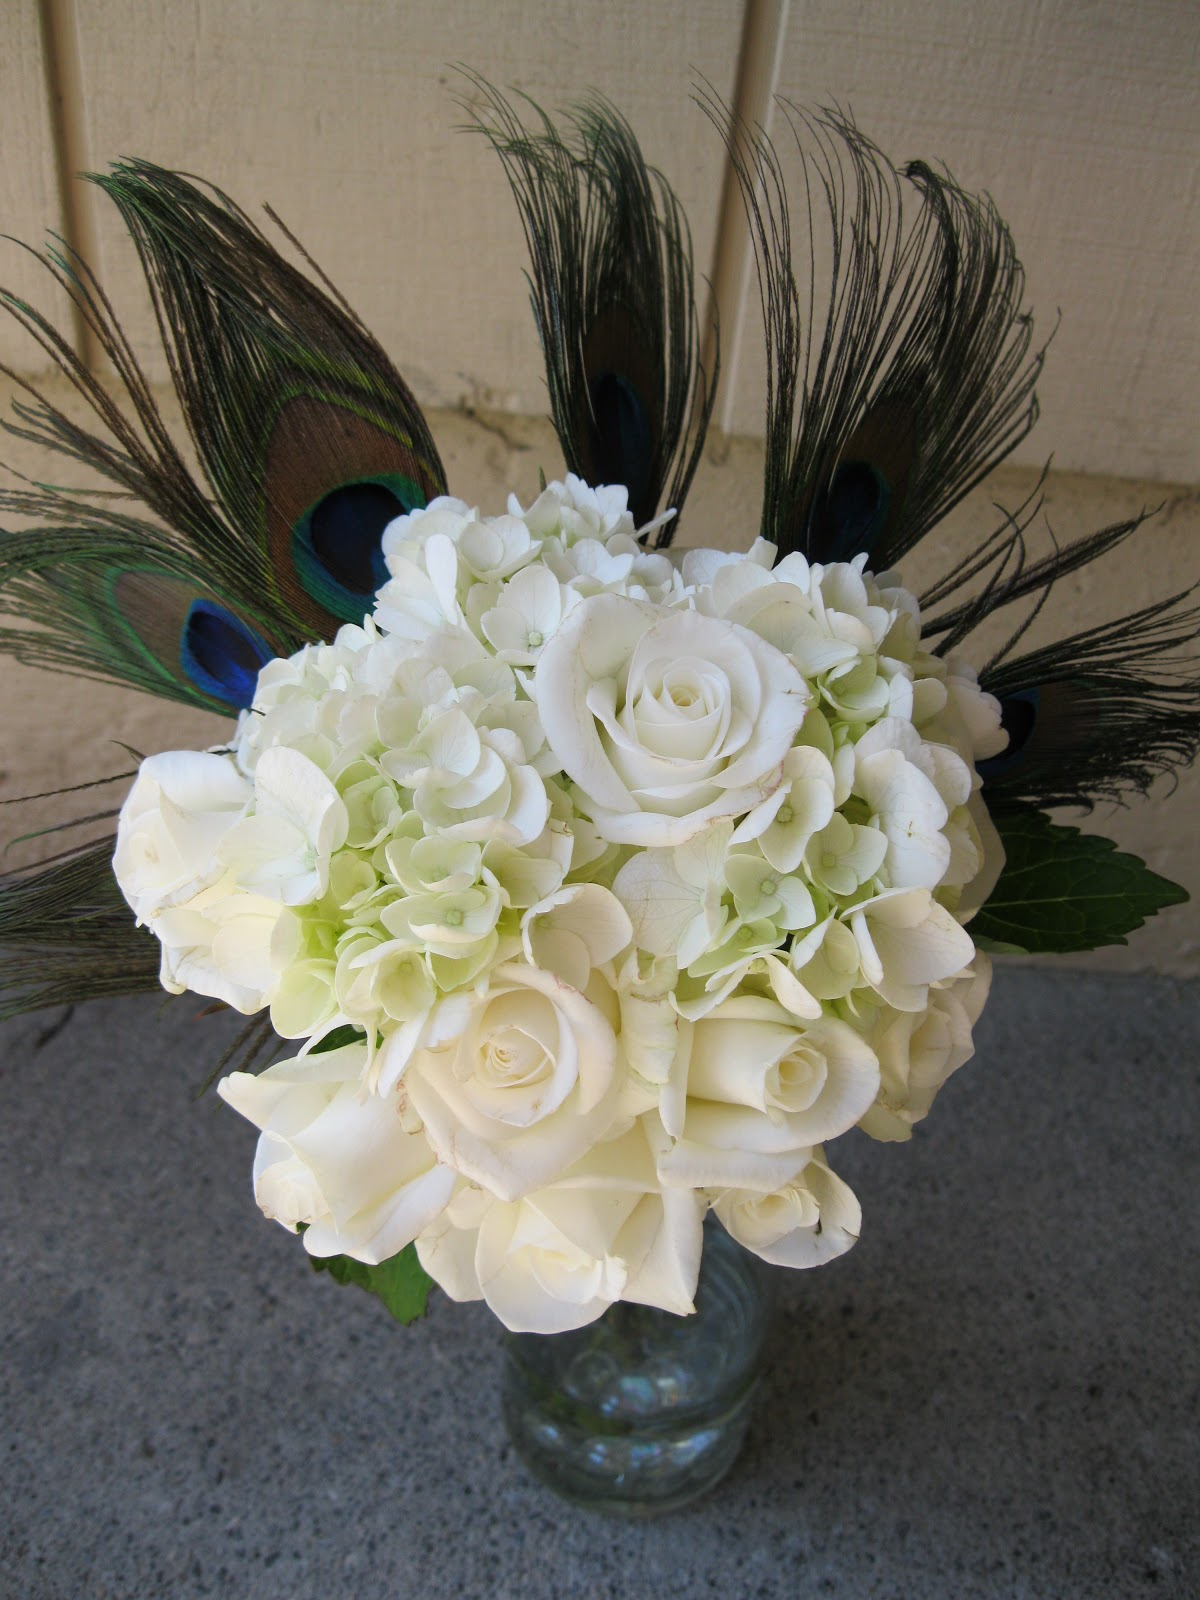 White Wedding Bouquets With Peacock Feathers : Bertoli bridal and design peacock feather bouquets